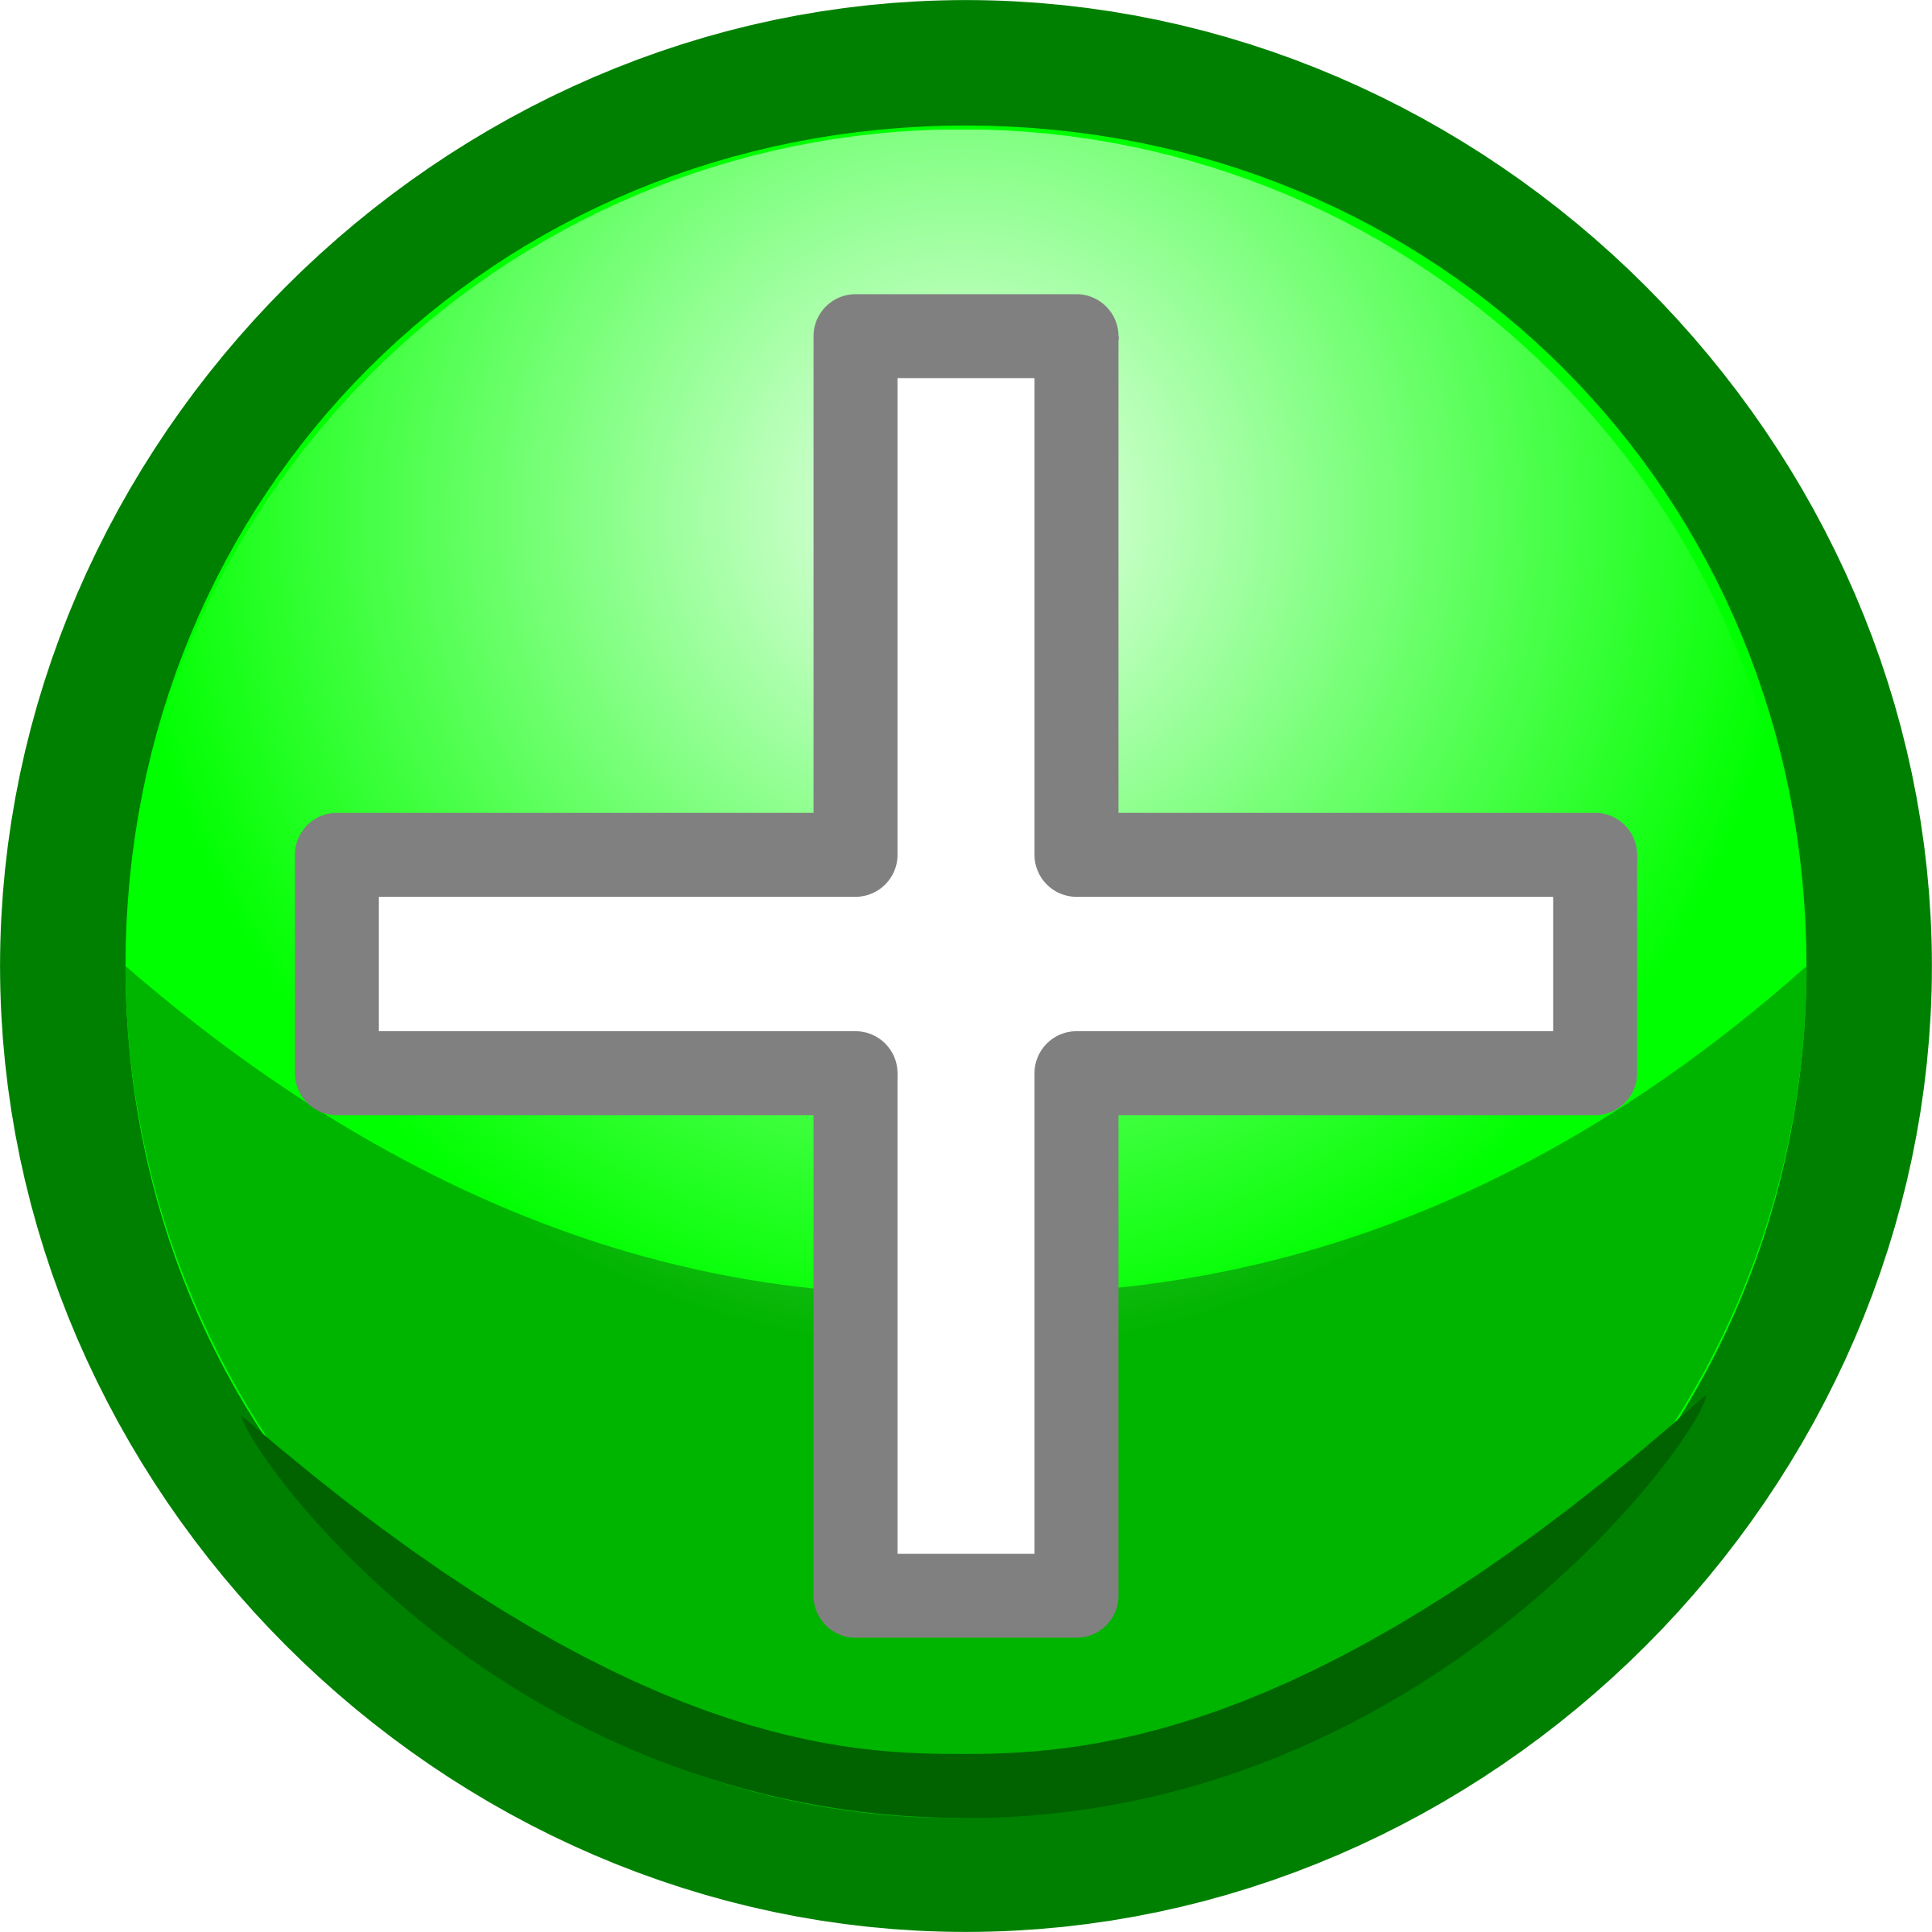 Circle cross clipart graphic library Clipart - Green plus graphic library